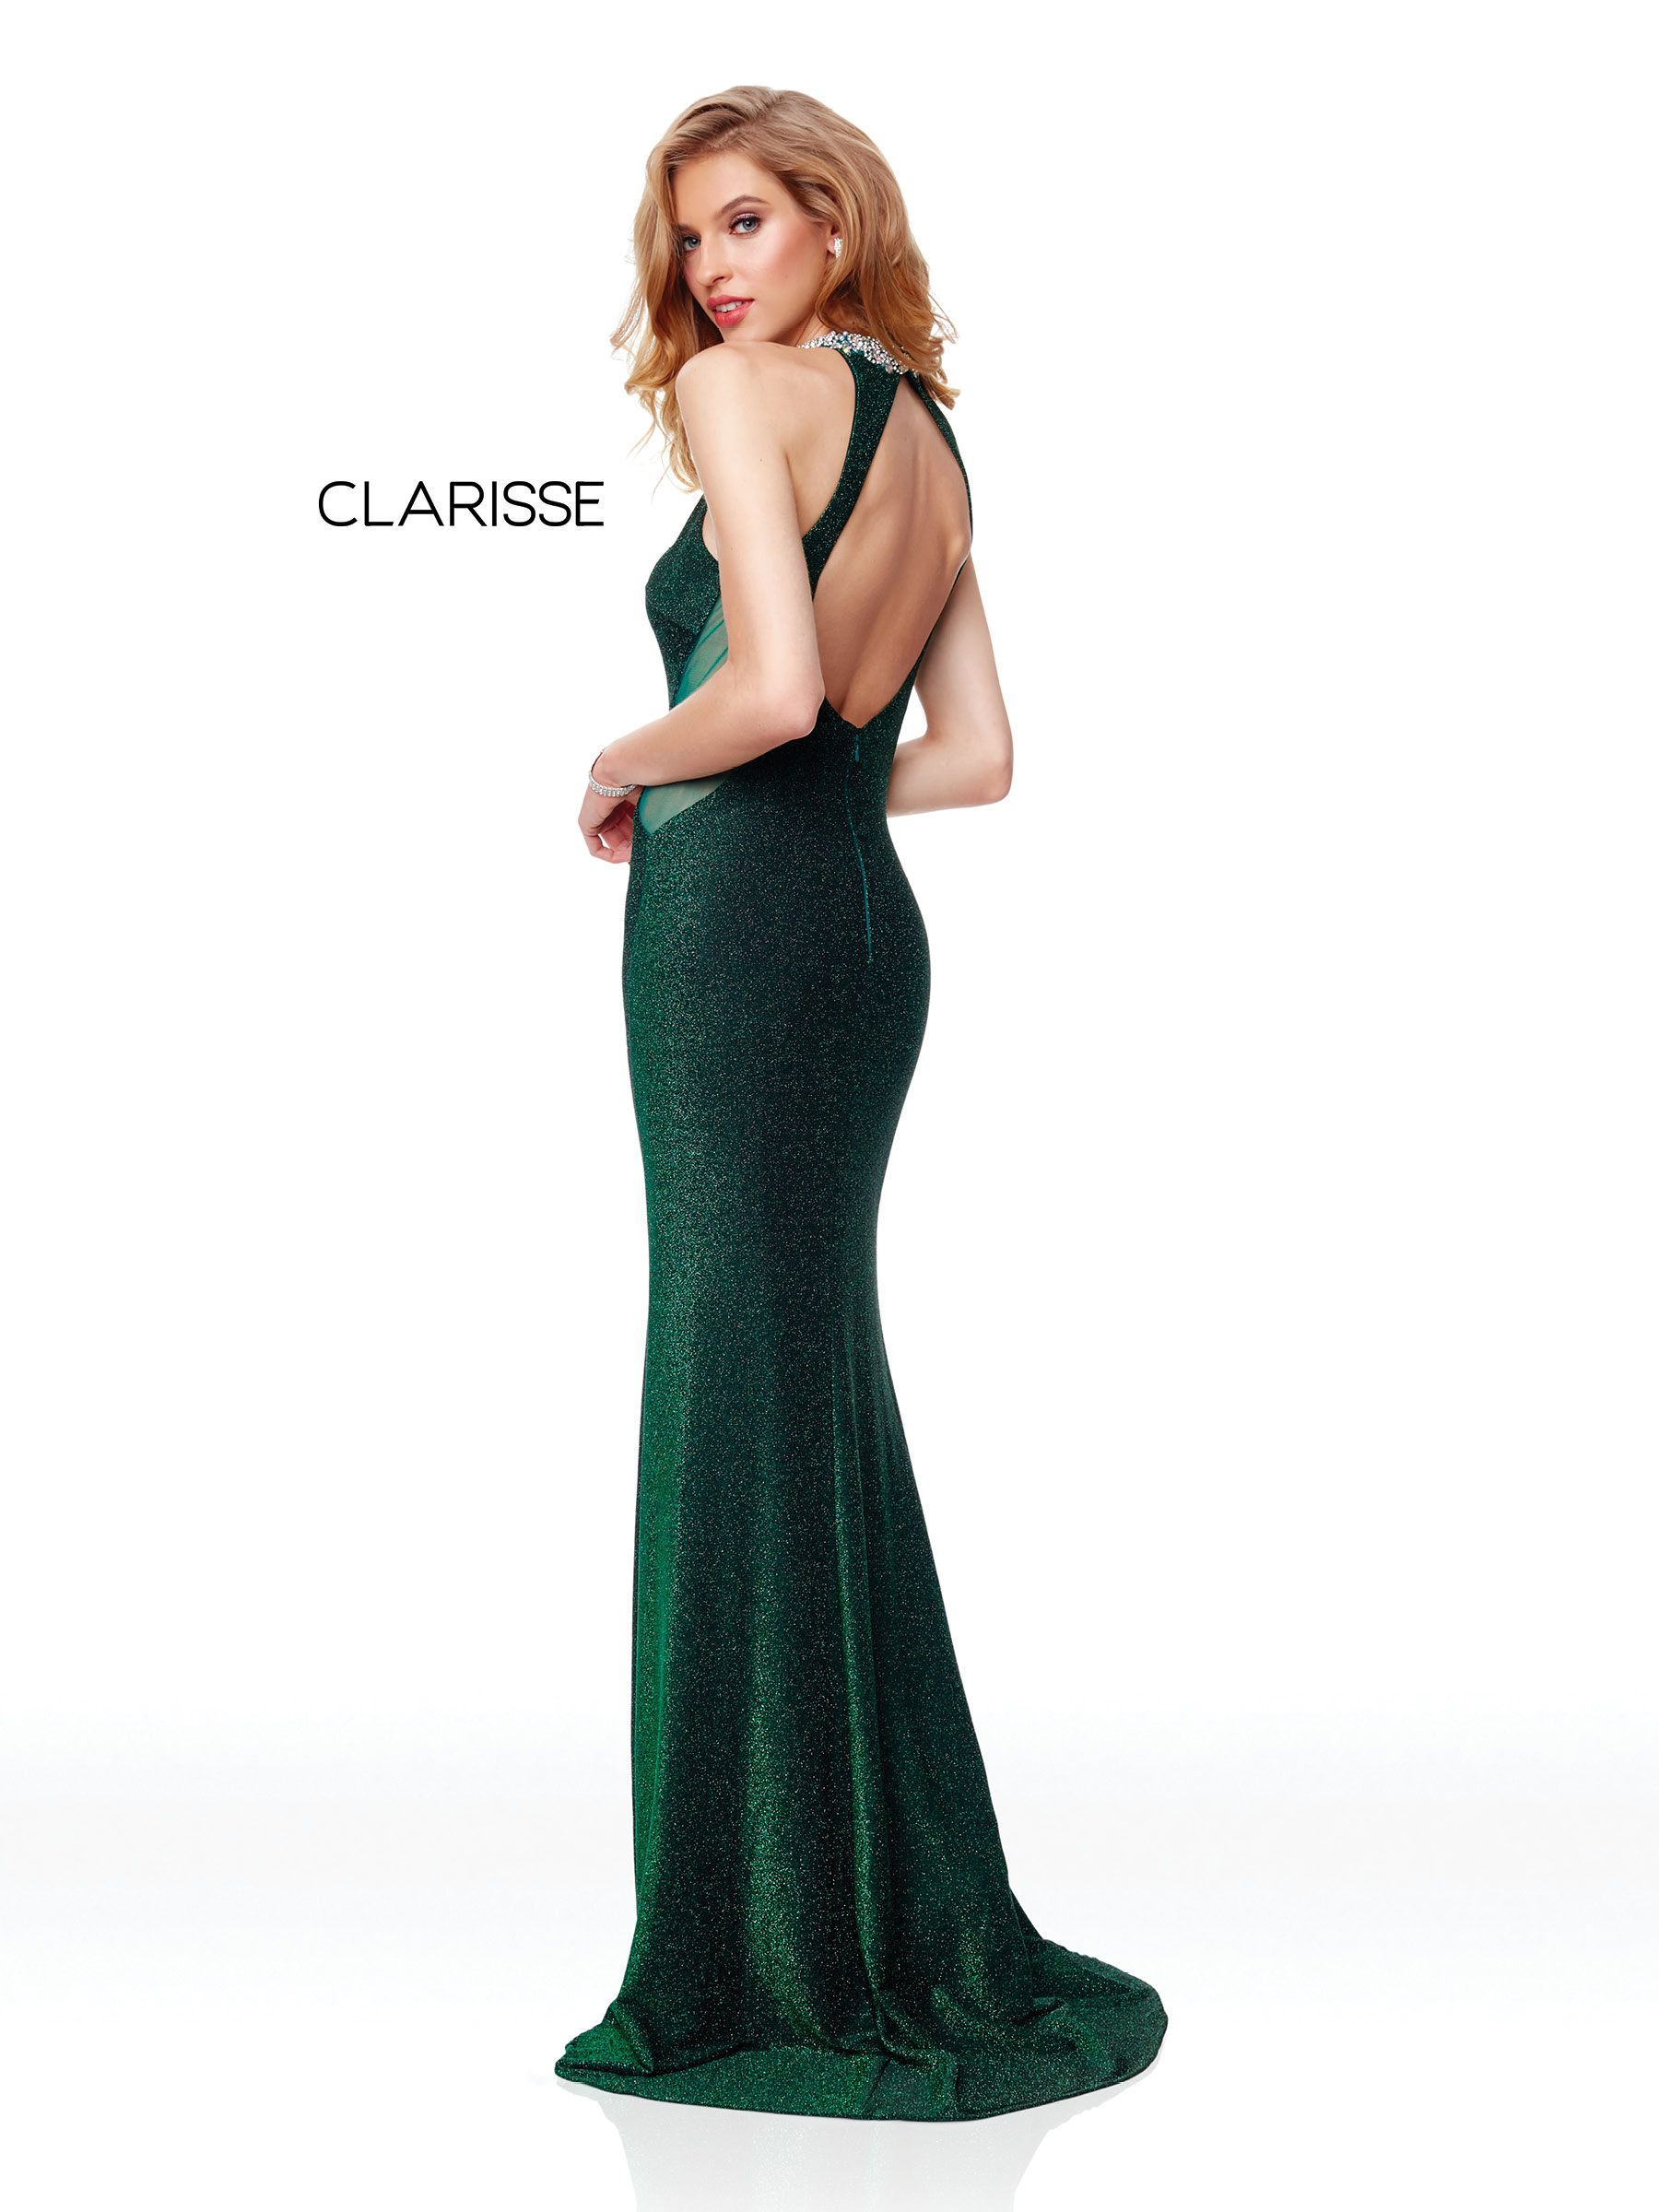 2fdab4409e07 3745 - Emerald green shimmer jersey prom dress with a beaded detail halter  neck and an open back